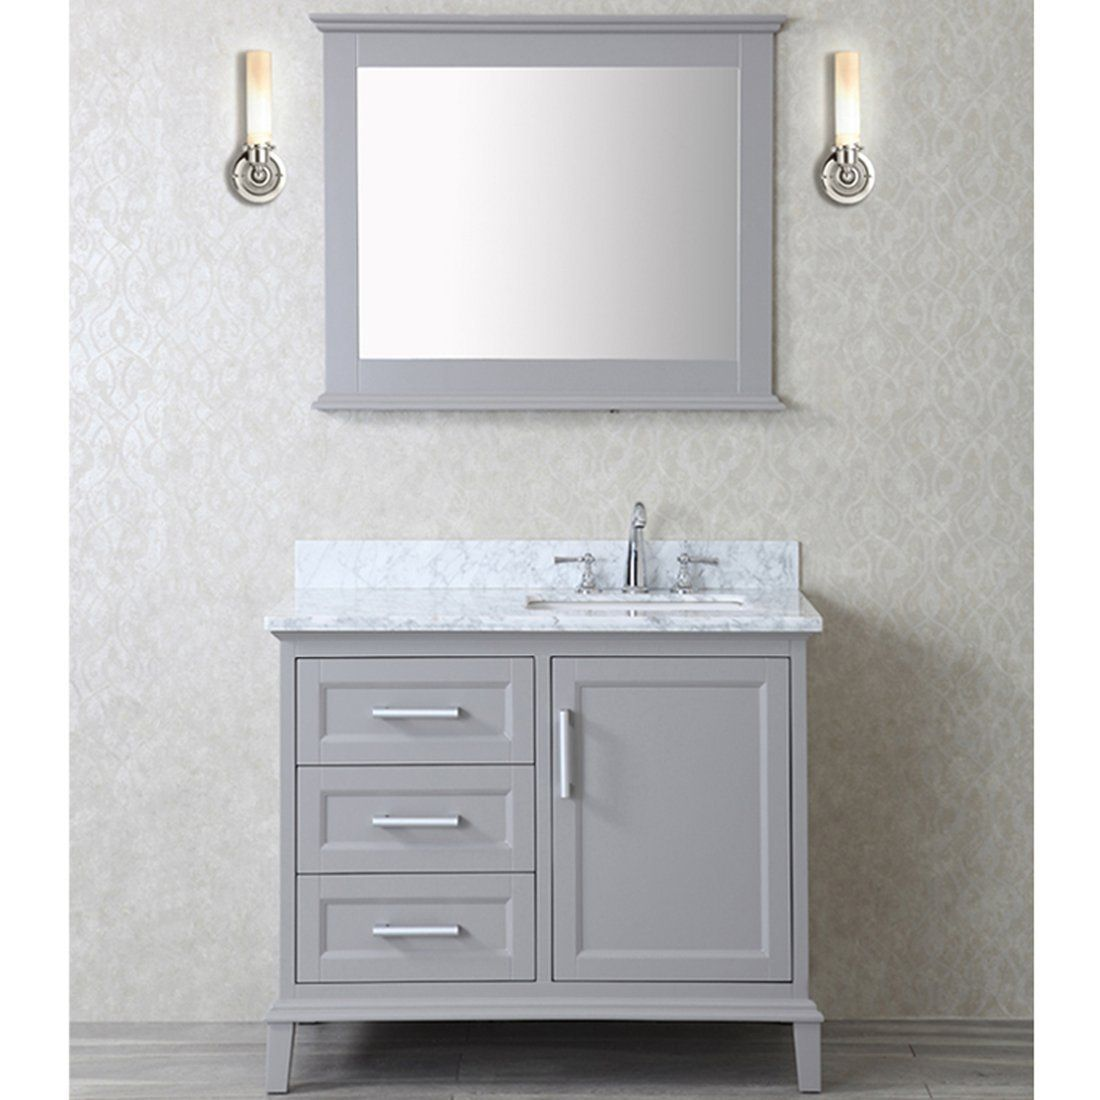 41+ Right side sink vanity top 48 inch inspiration